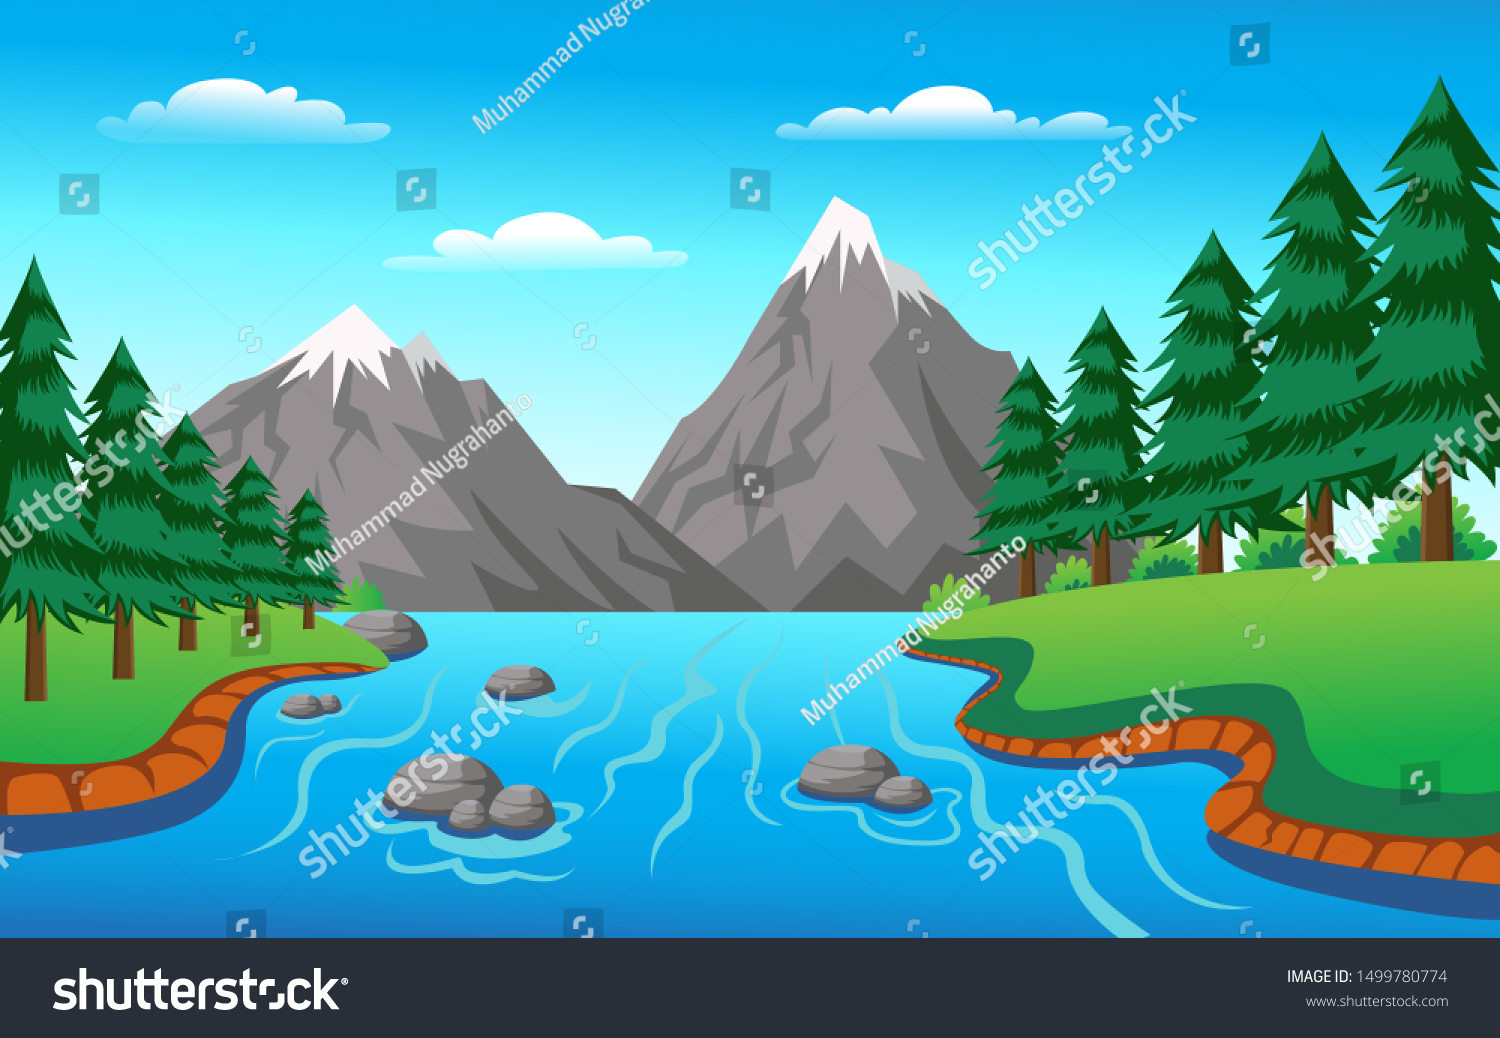 Landscape Design Stock Photos And Images 564 779